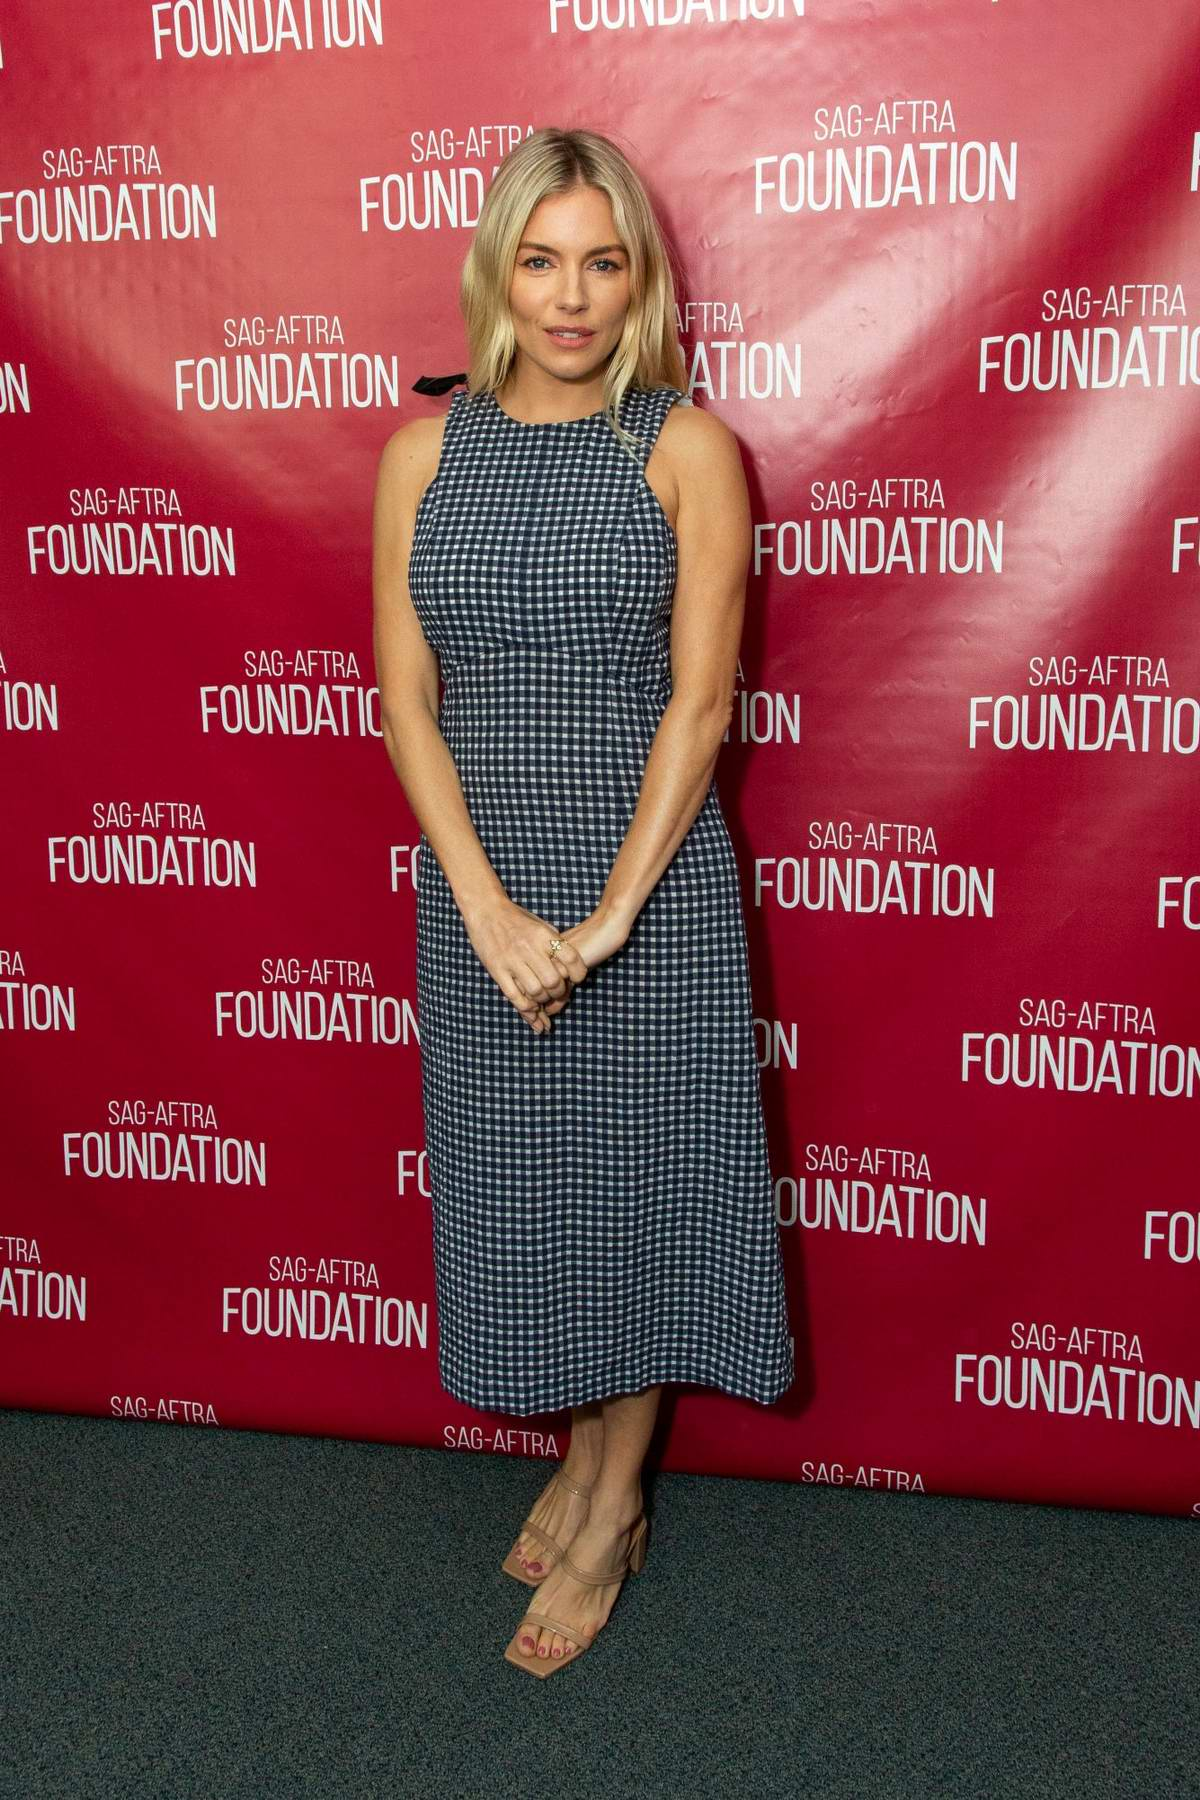 Sienna Miller attends the SAG-AFTRA Foundation Conversations with American Woman in Los Angeles